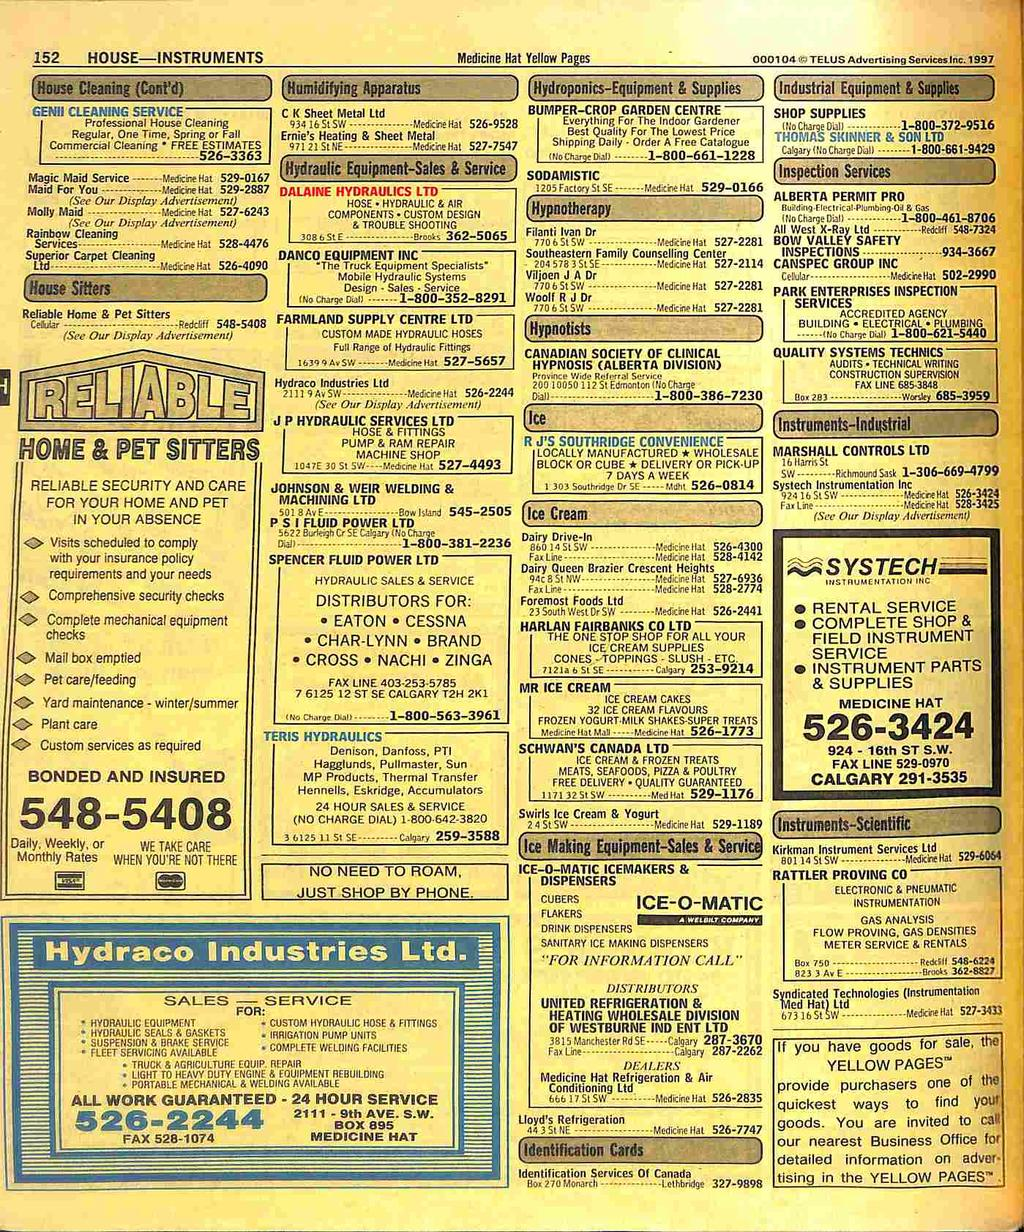 152 HOUSE INSTRUMENTS Medicine Hat Yellow Pages 0Q0TQ4i>tt TELUS Adtfoftinifig Sorvlcea fnc. 1997 GENII CLEAMNG SERVICE' ( Professional House Cleaning Regular. One Time.